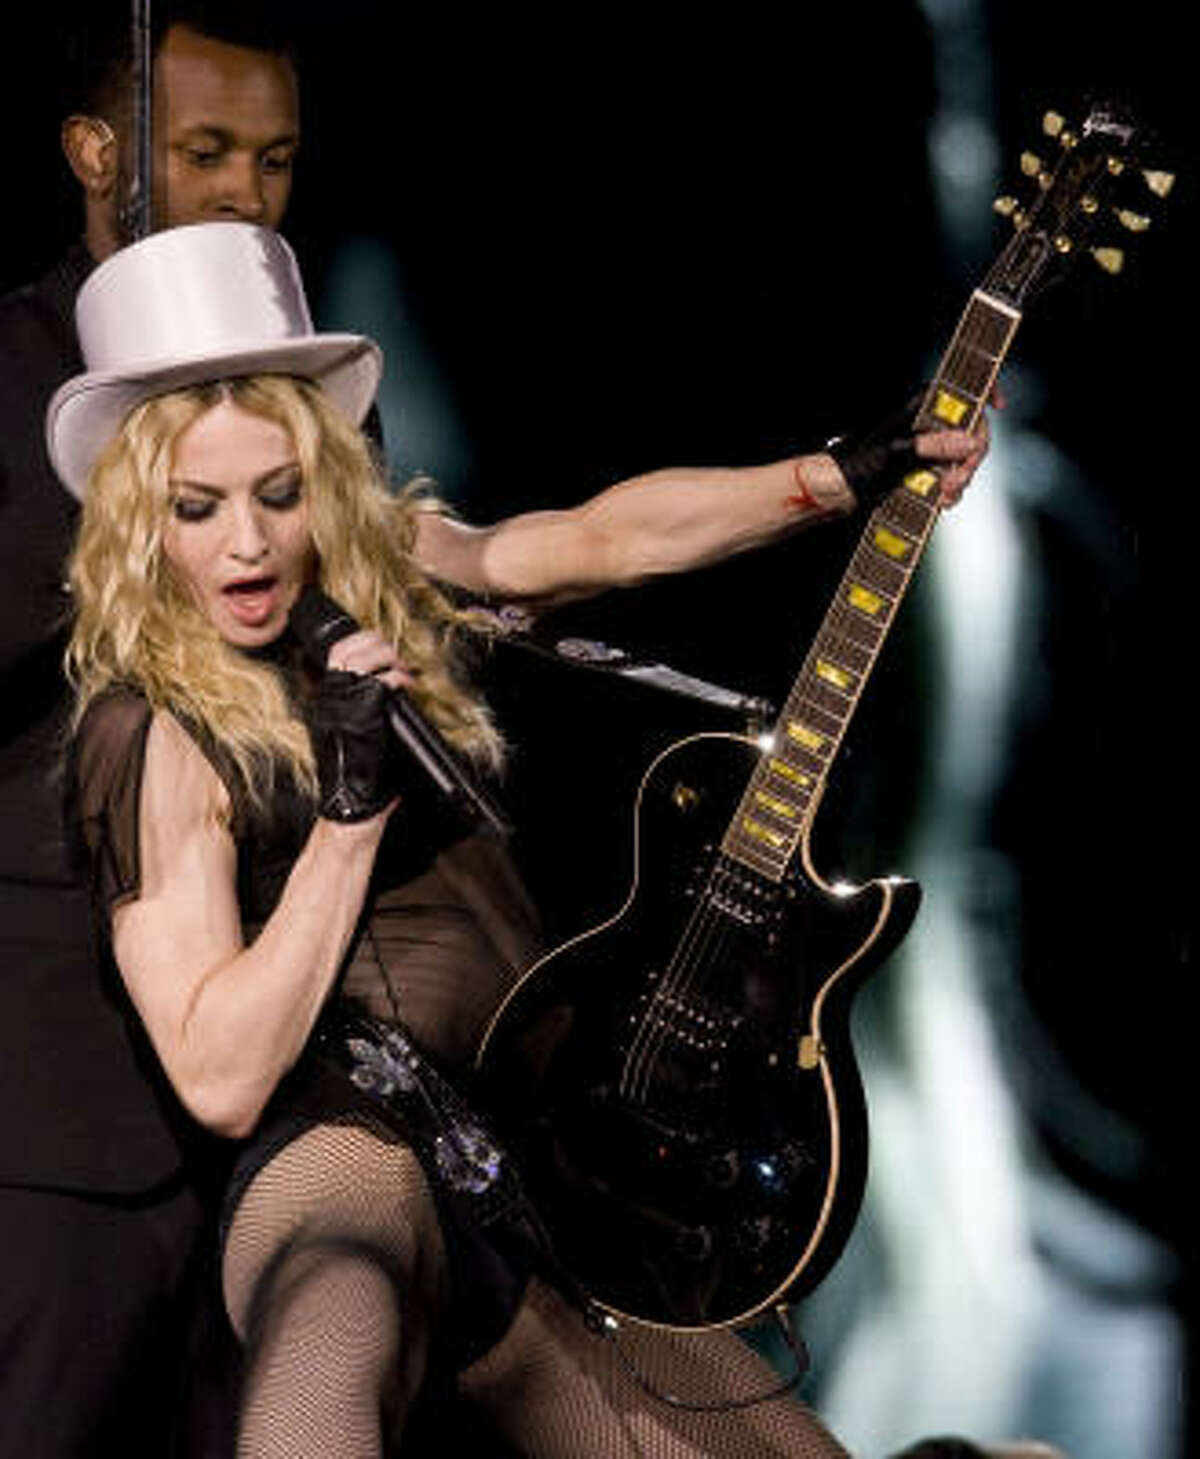 Madonna. From a virgin to dominatrix, she paved the way for the divas of today.